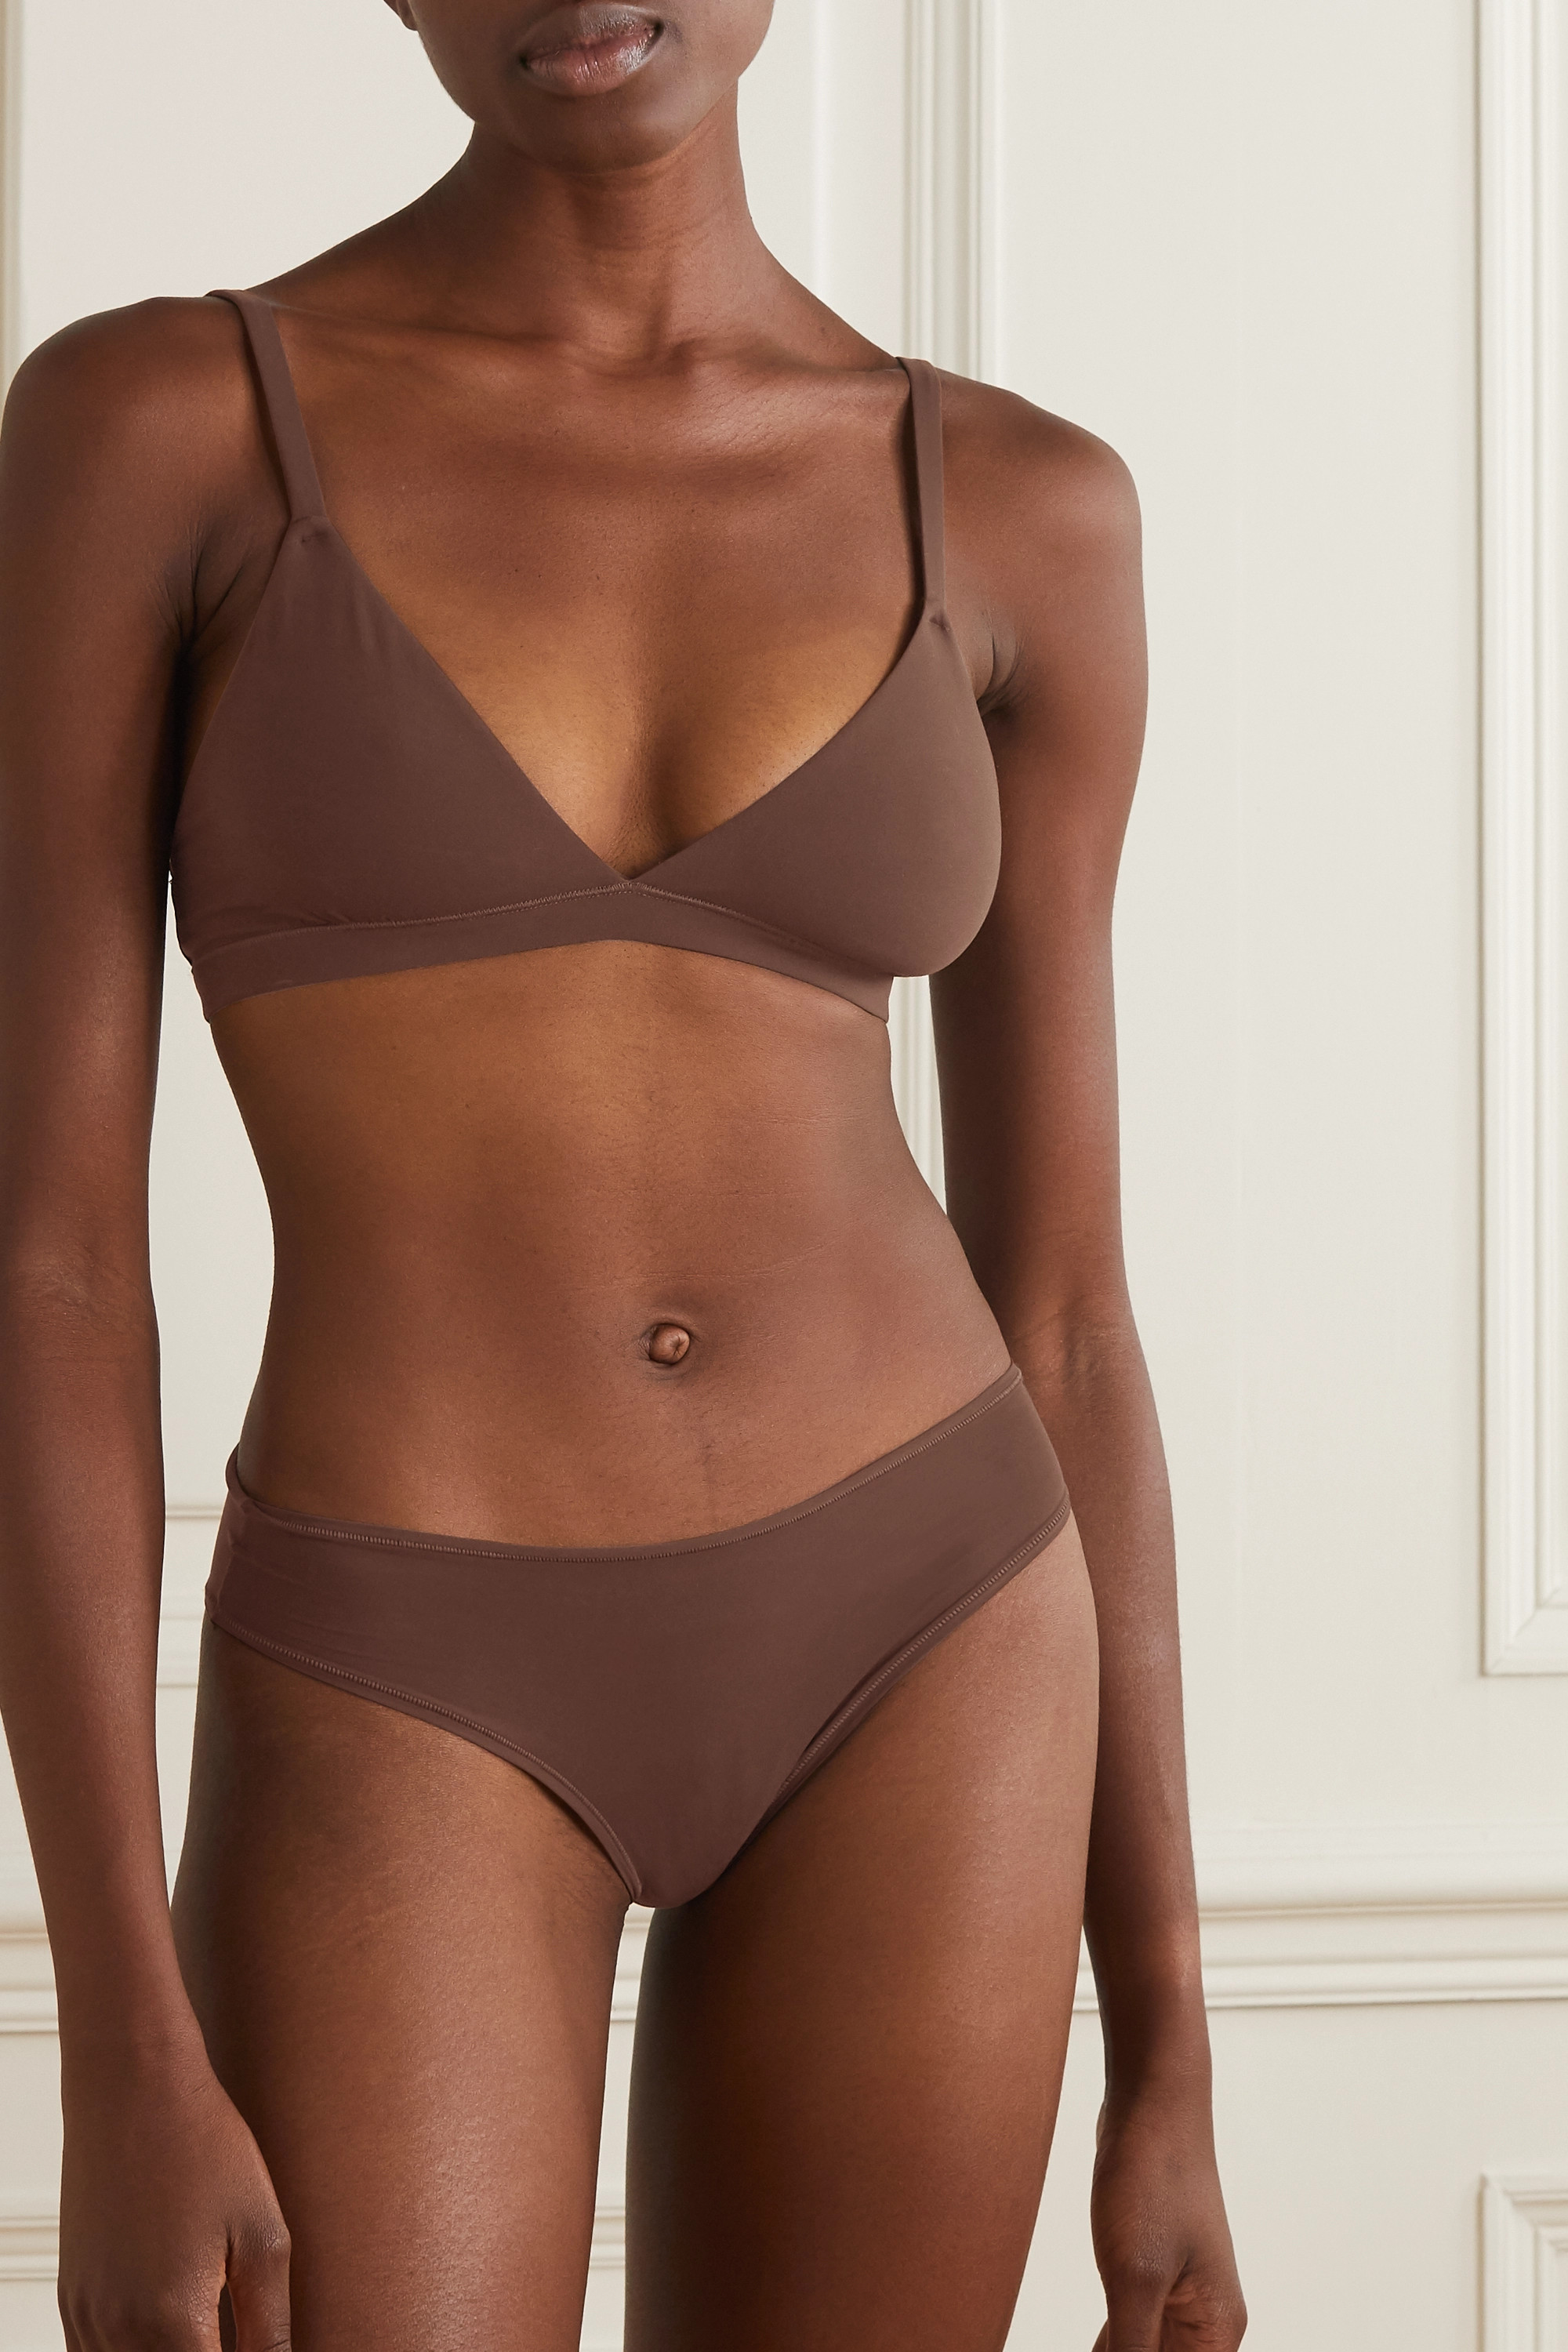 SKIMS Fits Everybody triangle bralette - Cocoa